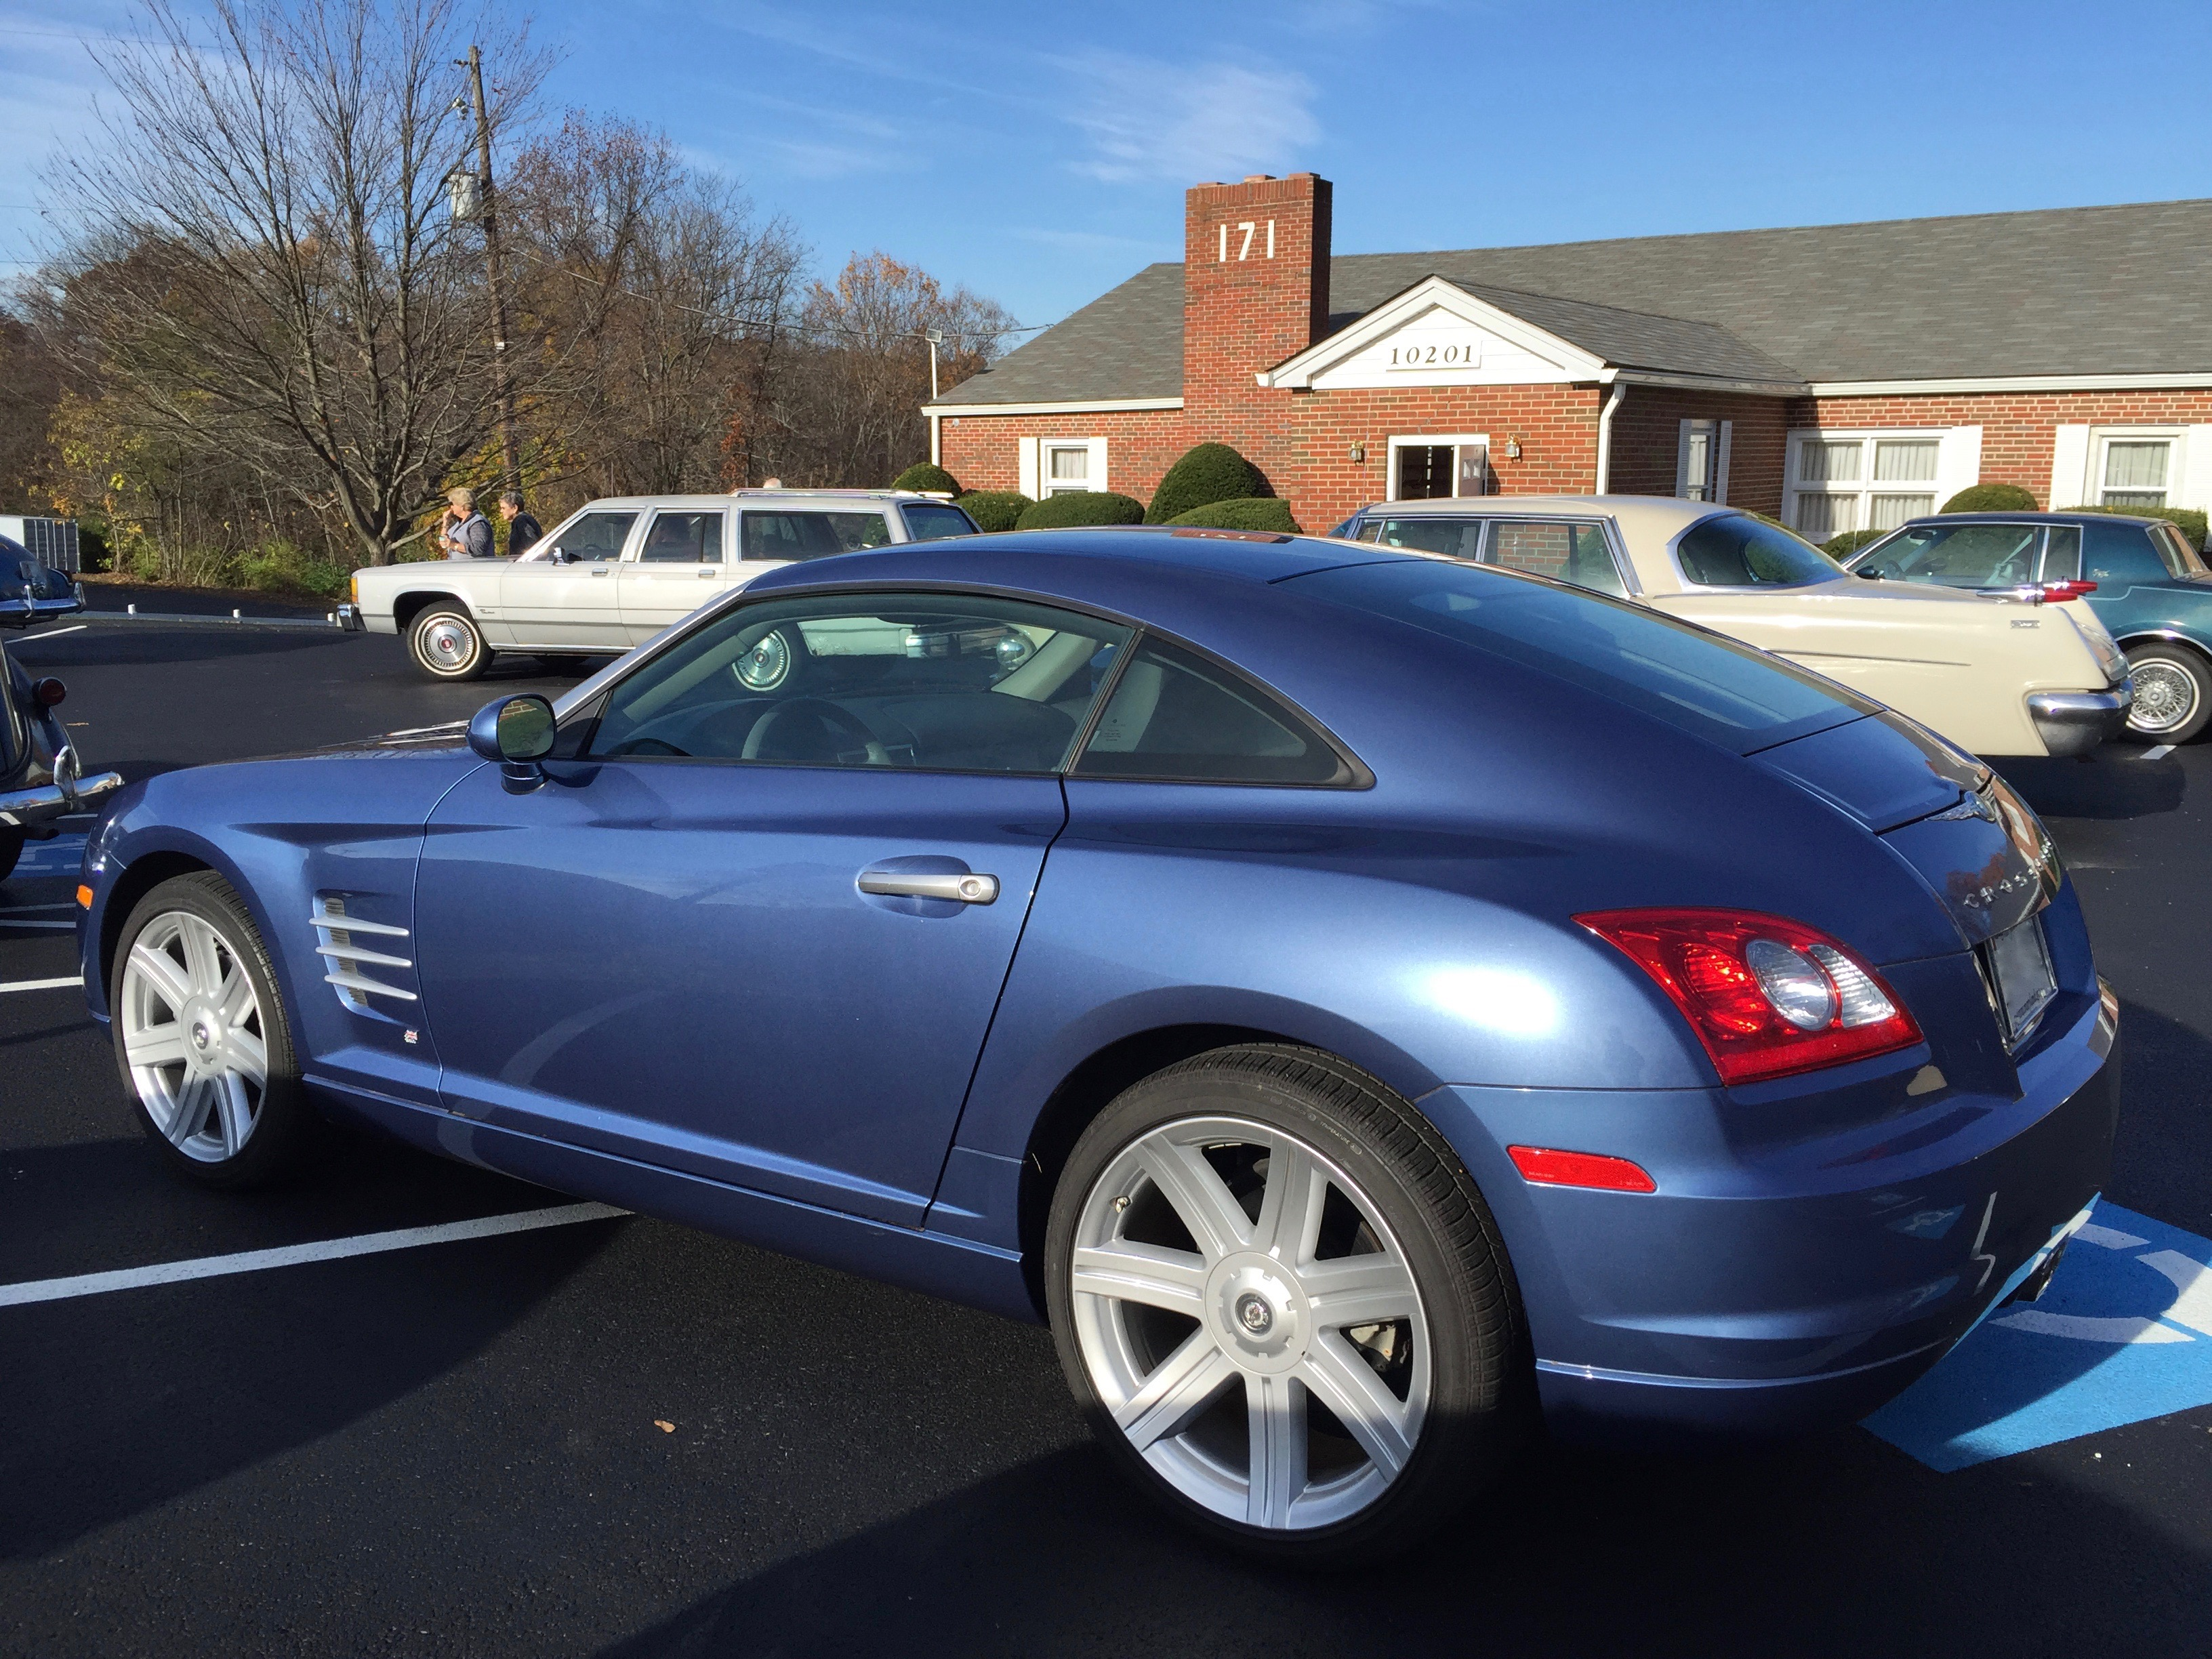 File:Chrysler Crossfire Fastback In Damascus MD 2of2